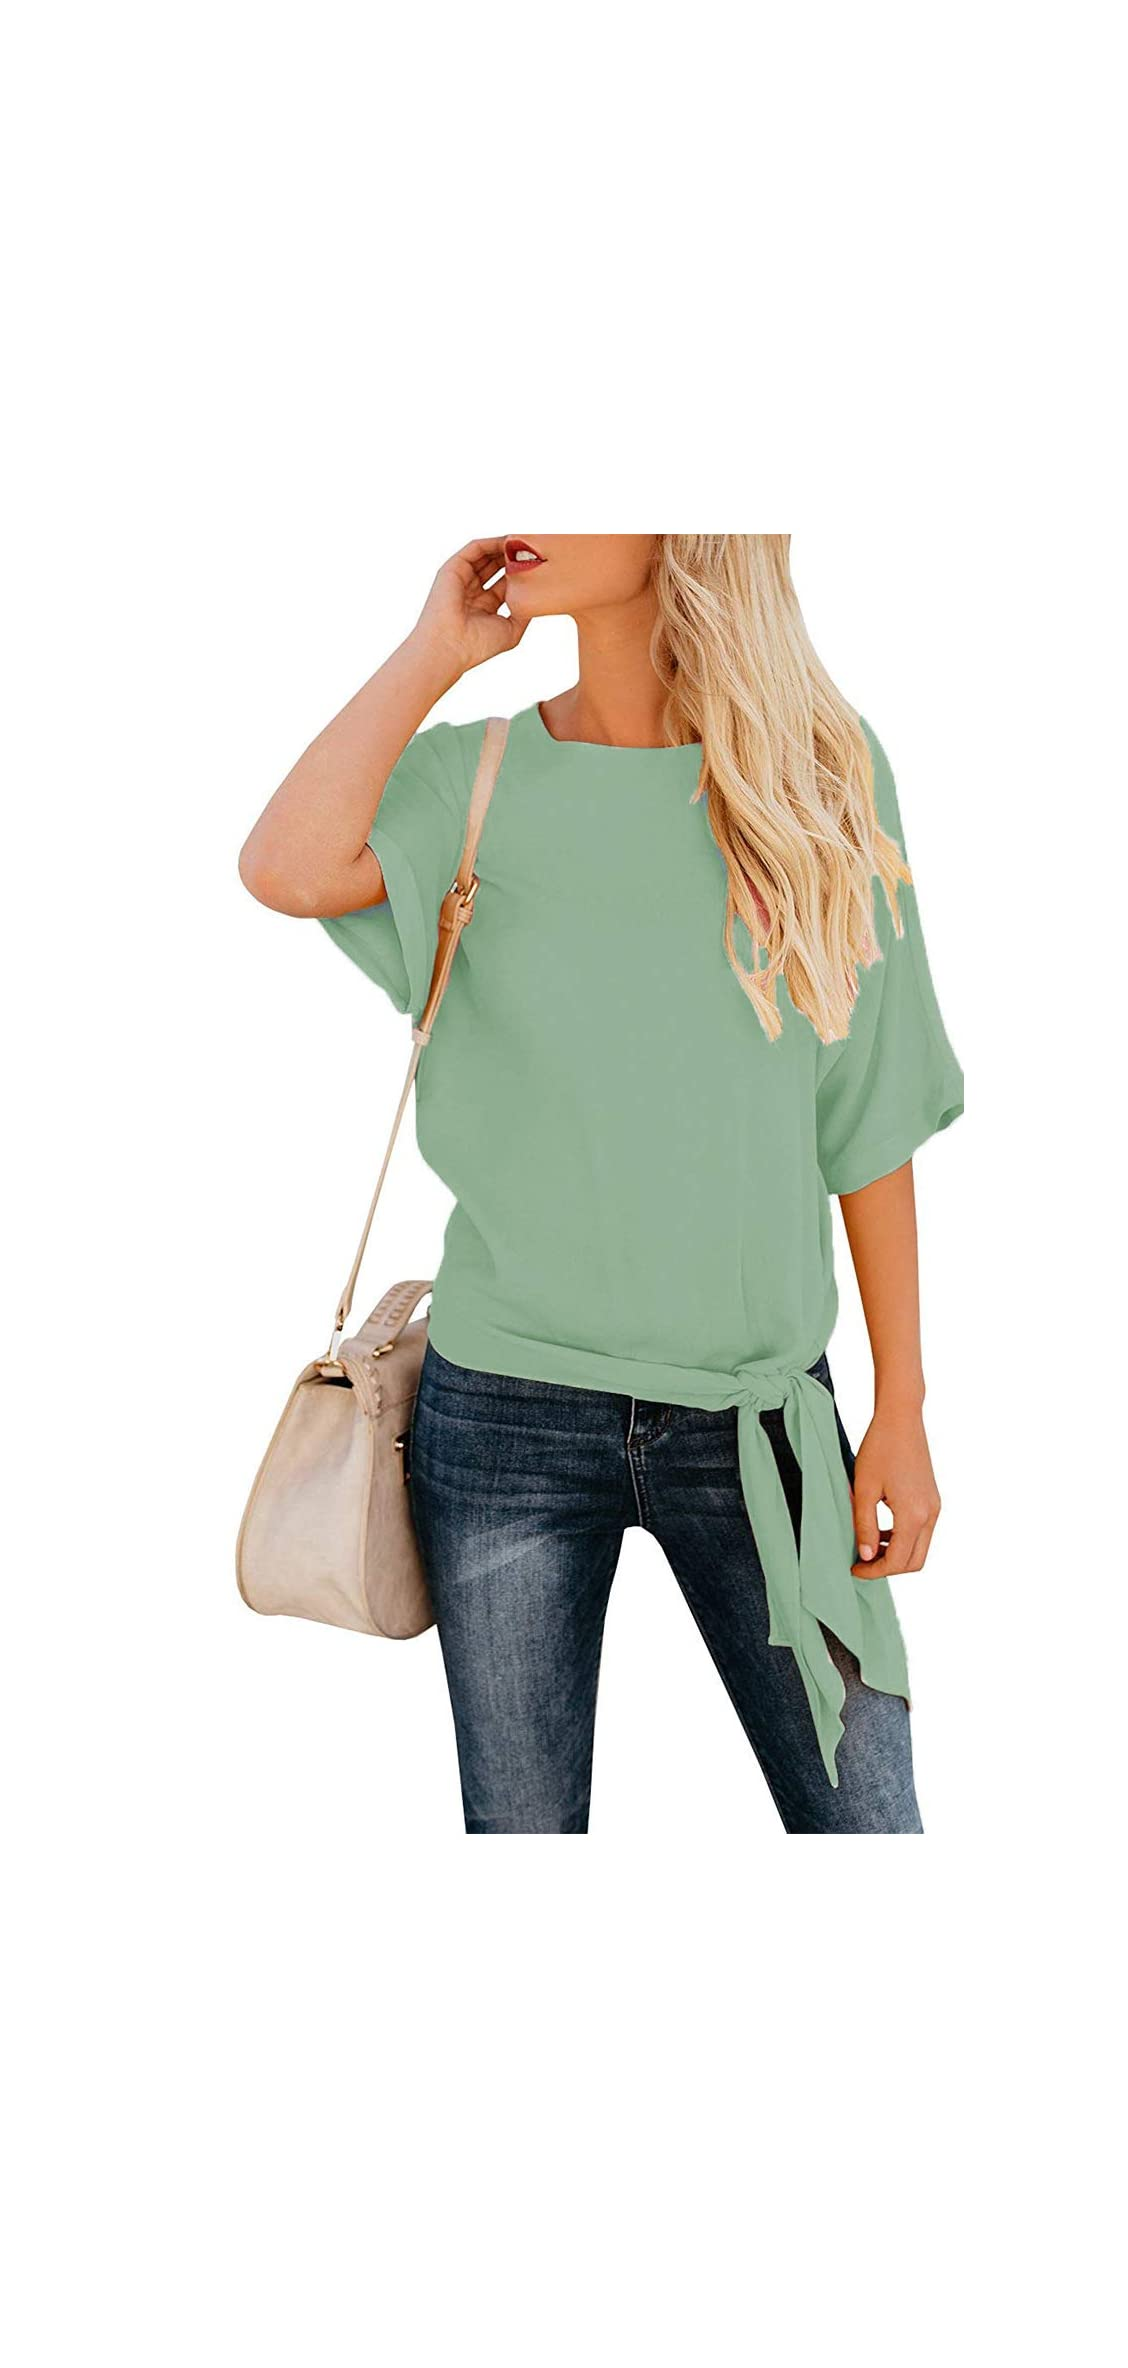 Women's Casual Knot Tie Front Half Sleeve Summer T Shirt